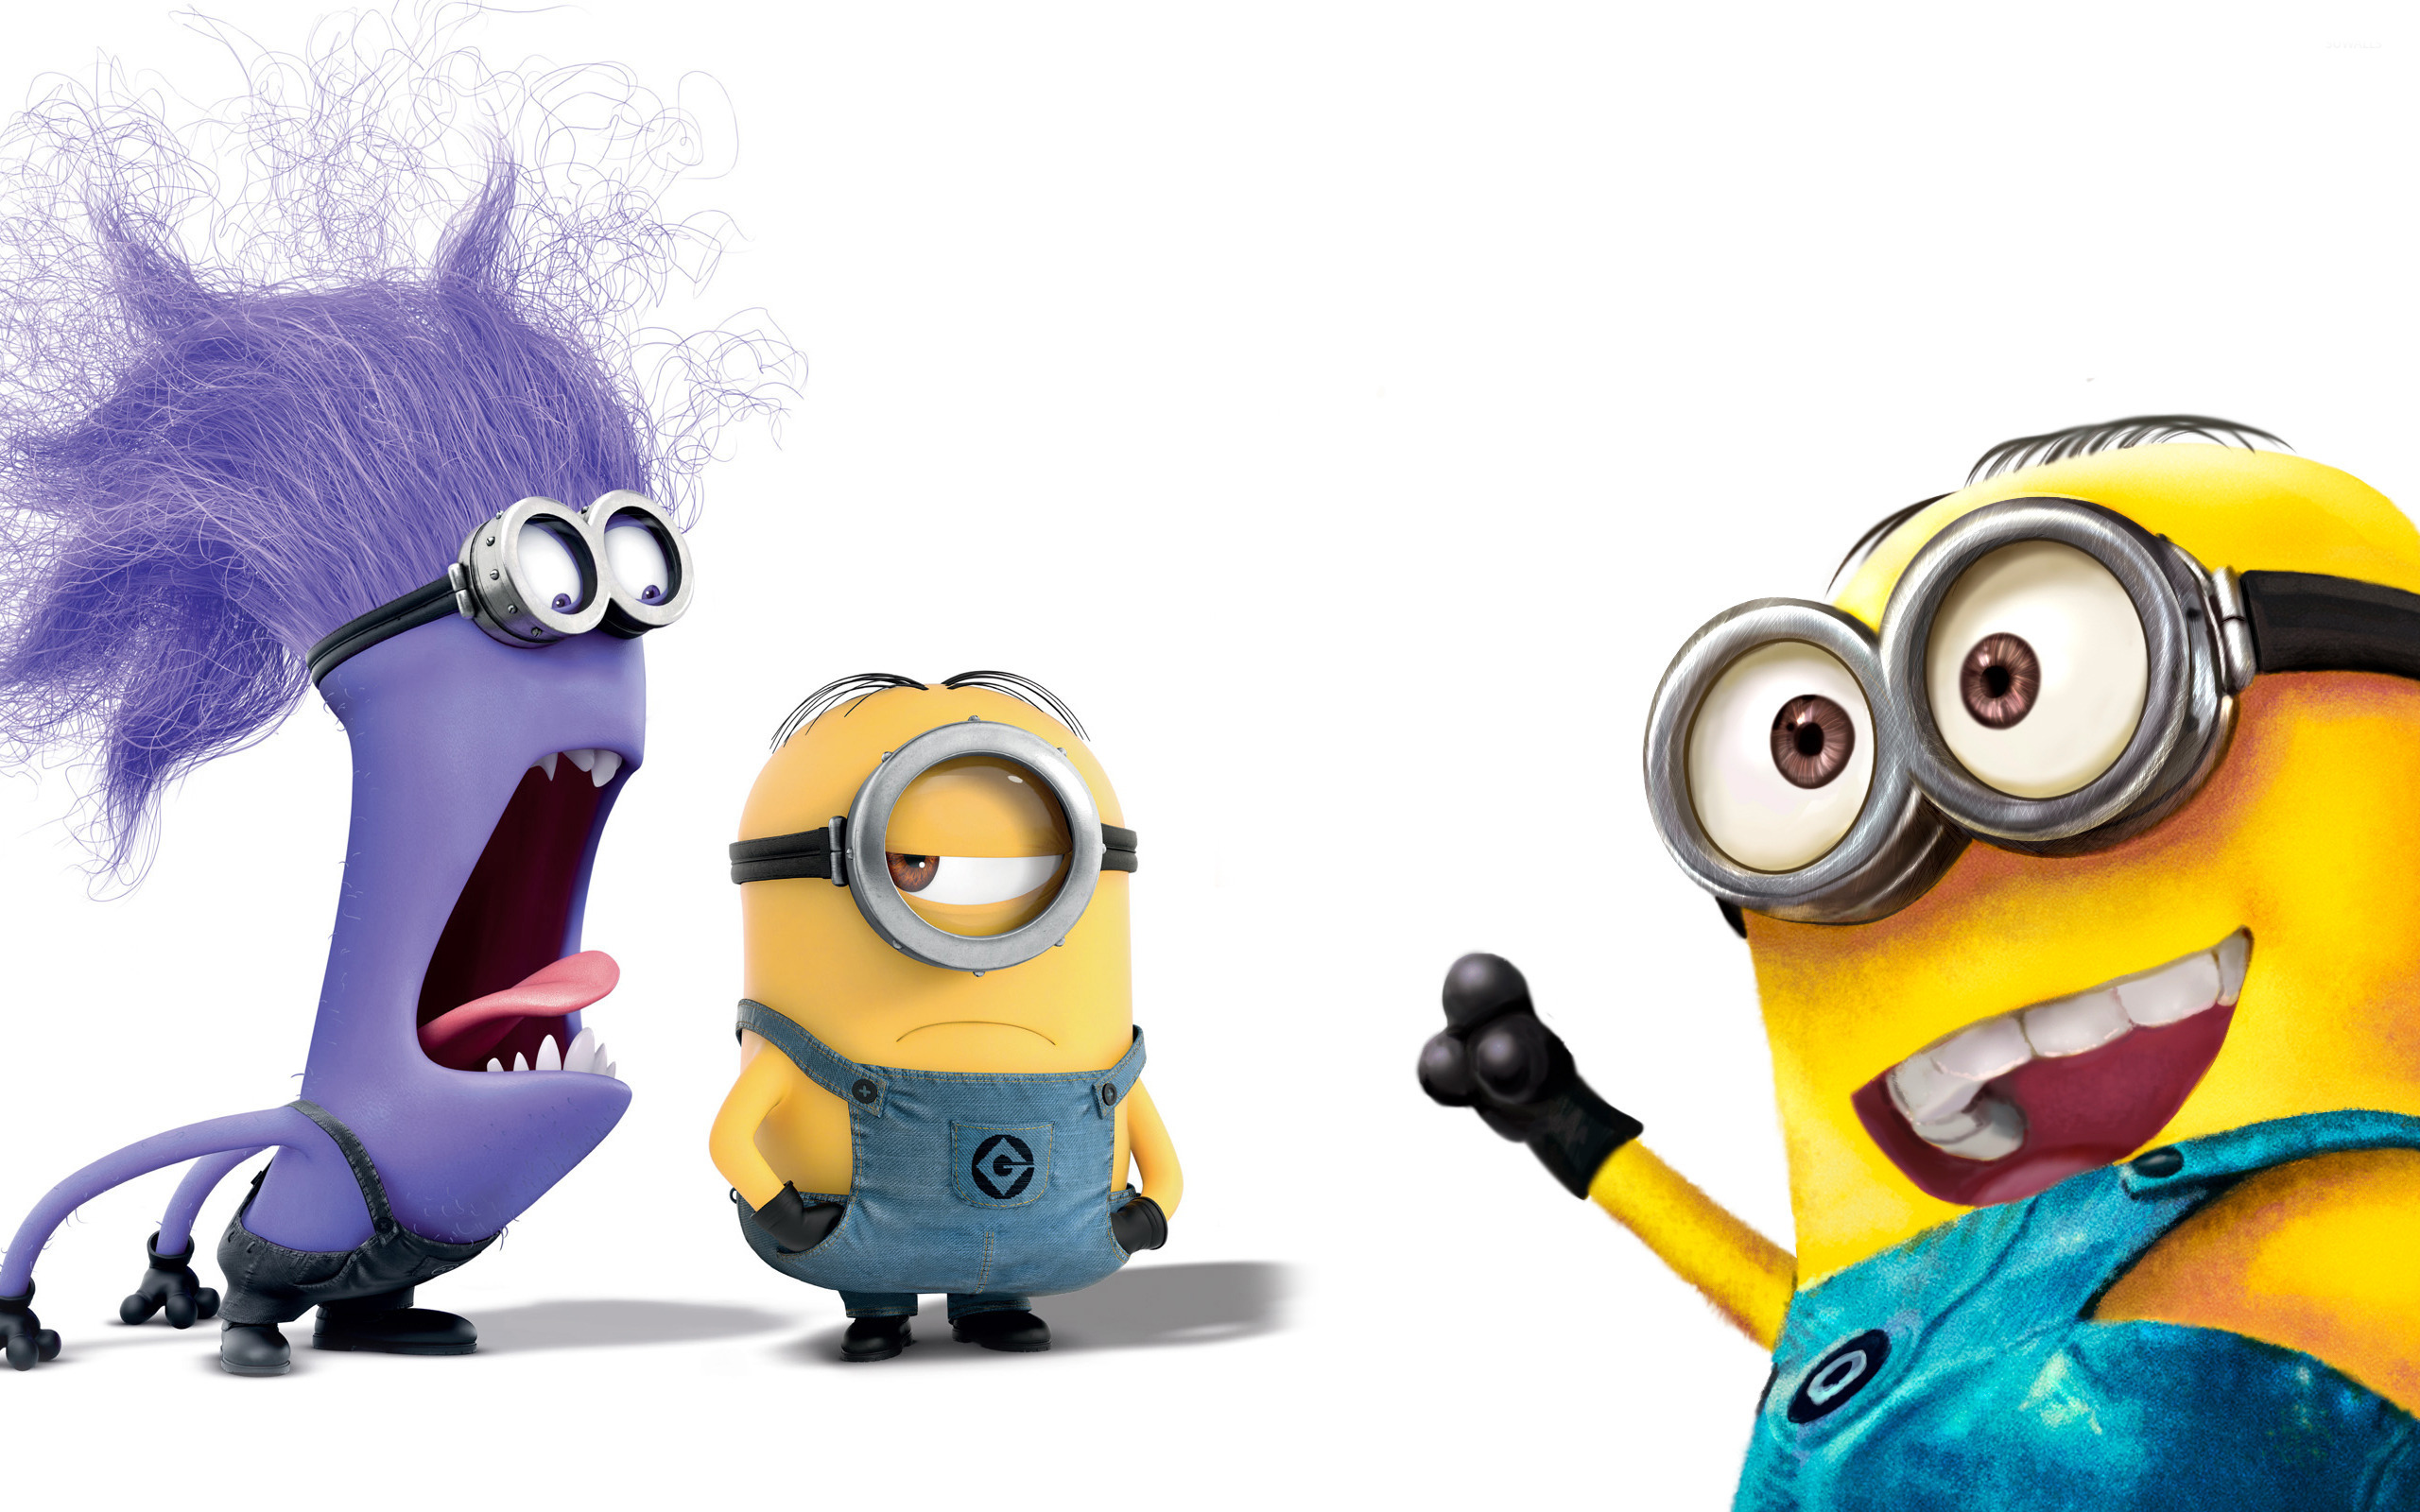 minions - despicable me 2 [5] wallpaper - cartoon wallpapers - #22545